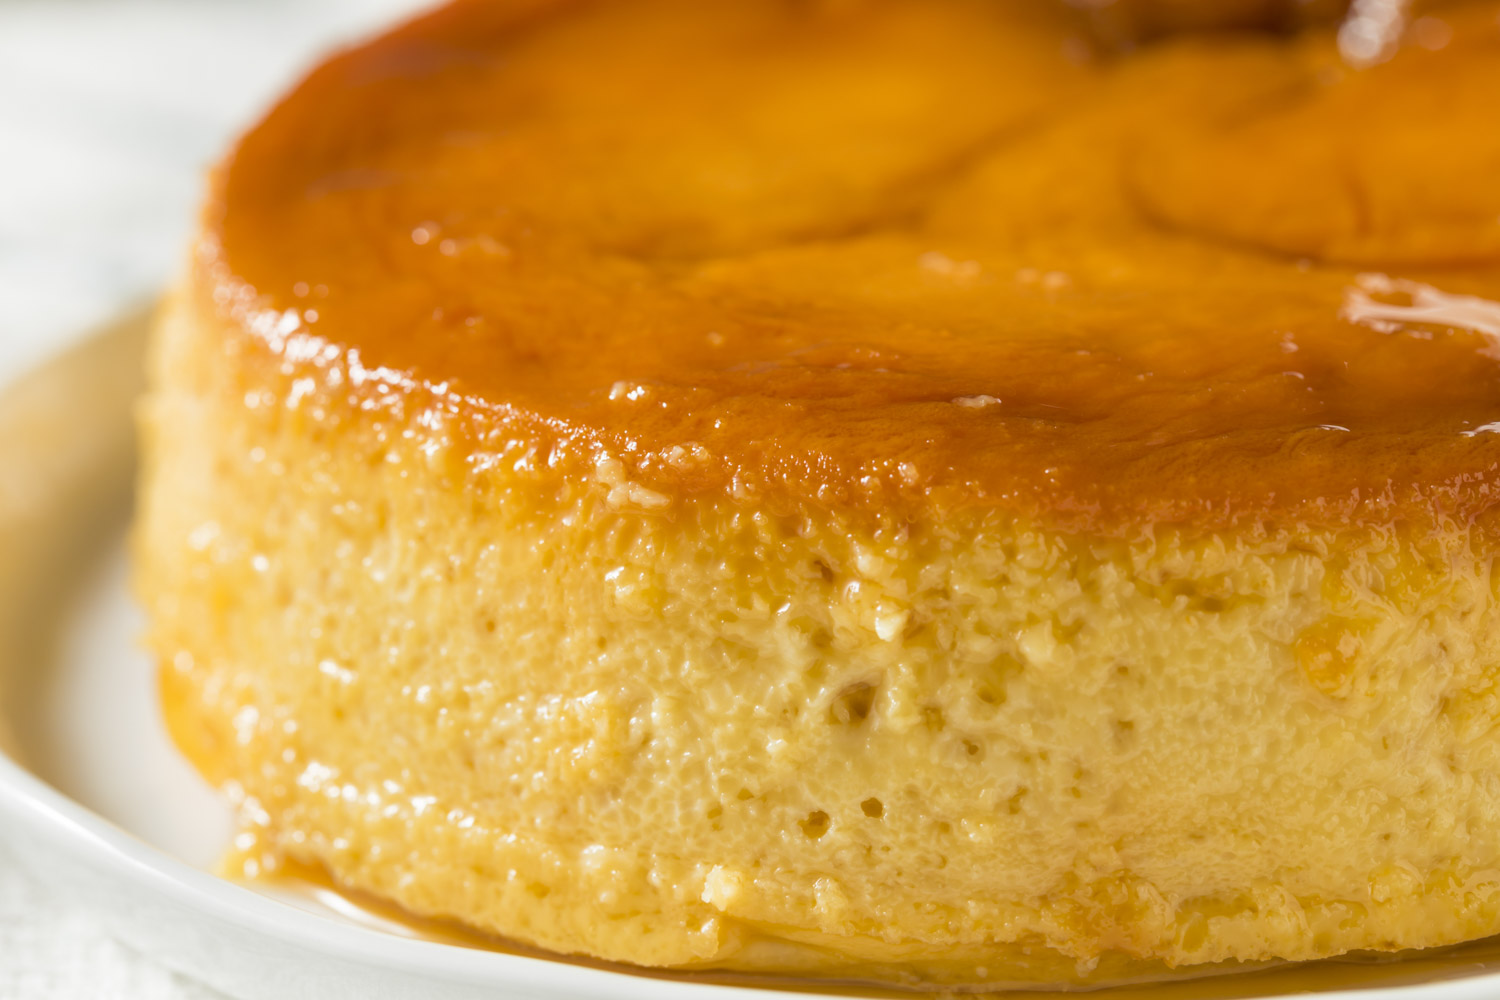 Sweet Homemade Spanish Flan Dessert with Caramel Sauce